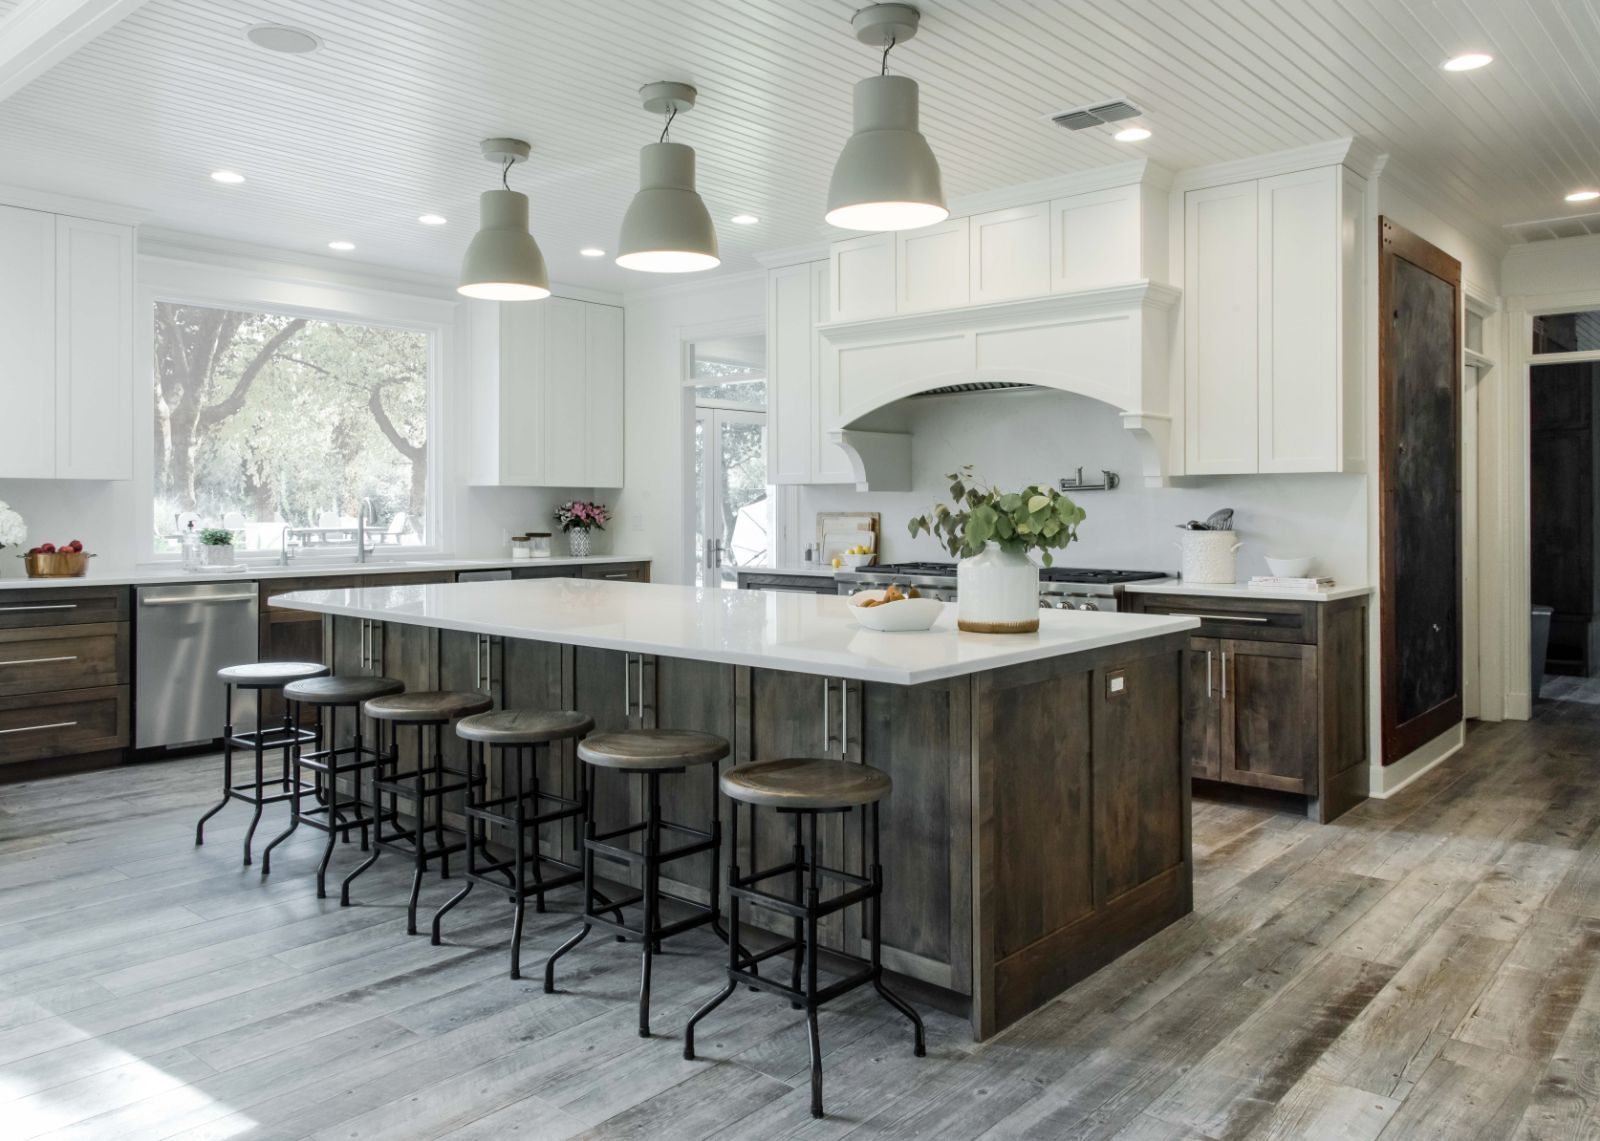 Bates Kitchen Remodel with large kitchen island, hanging light fixtures, and brown cabinets